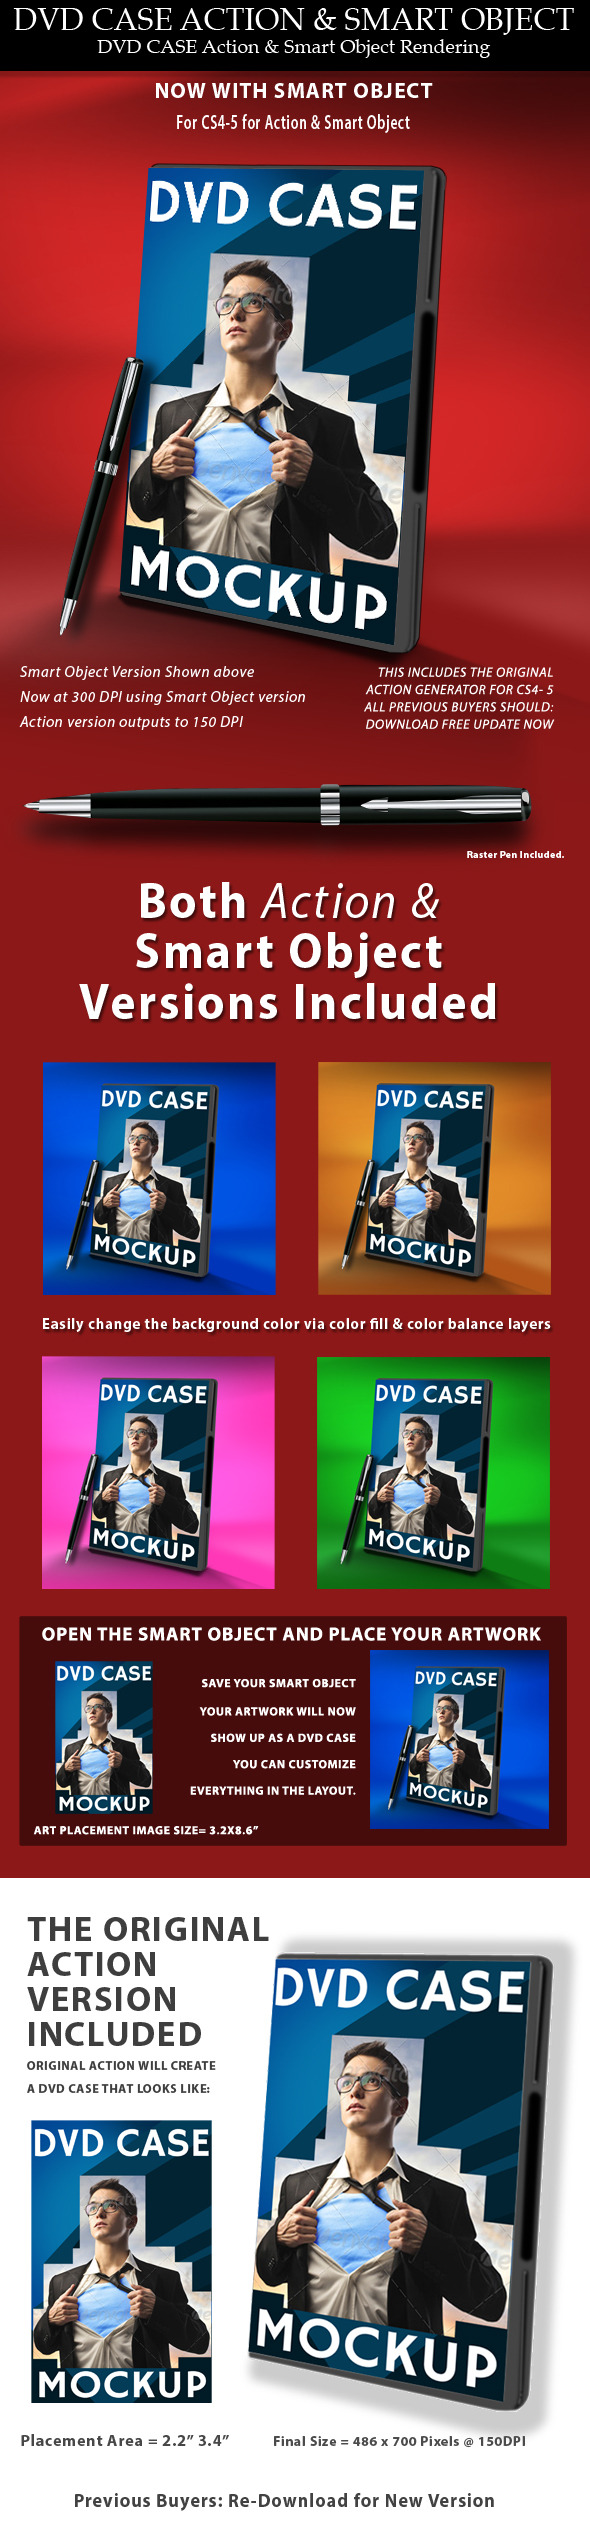 DVD Case Action & Smart Object